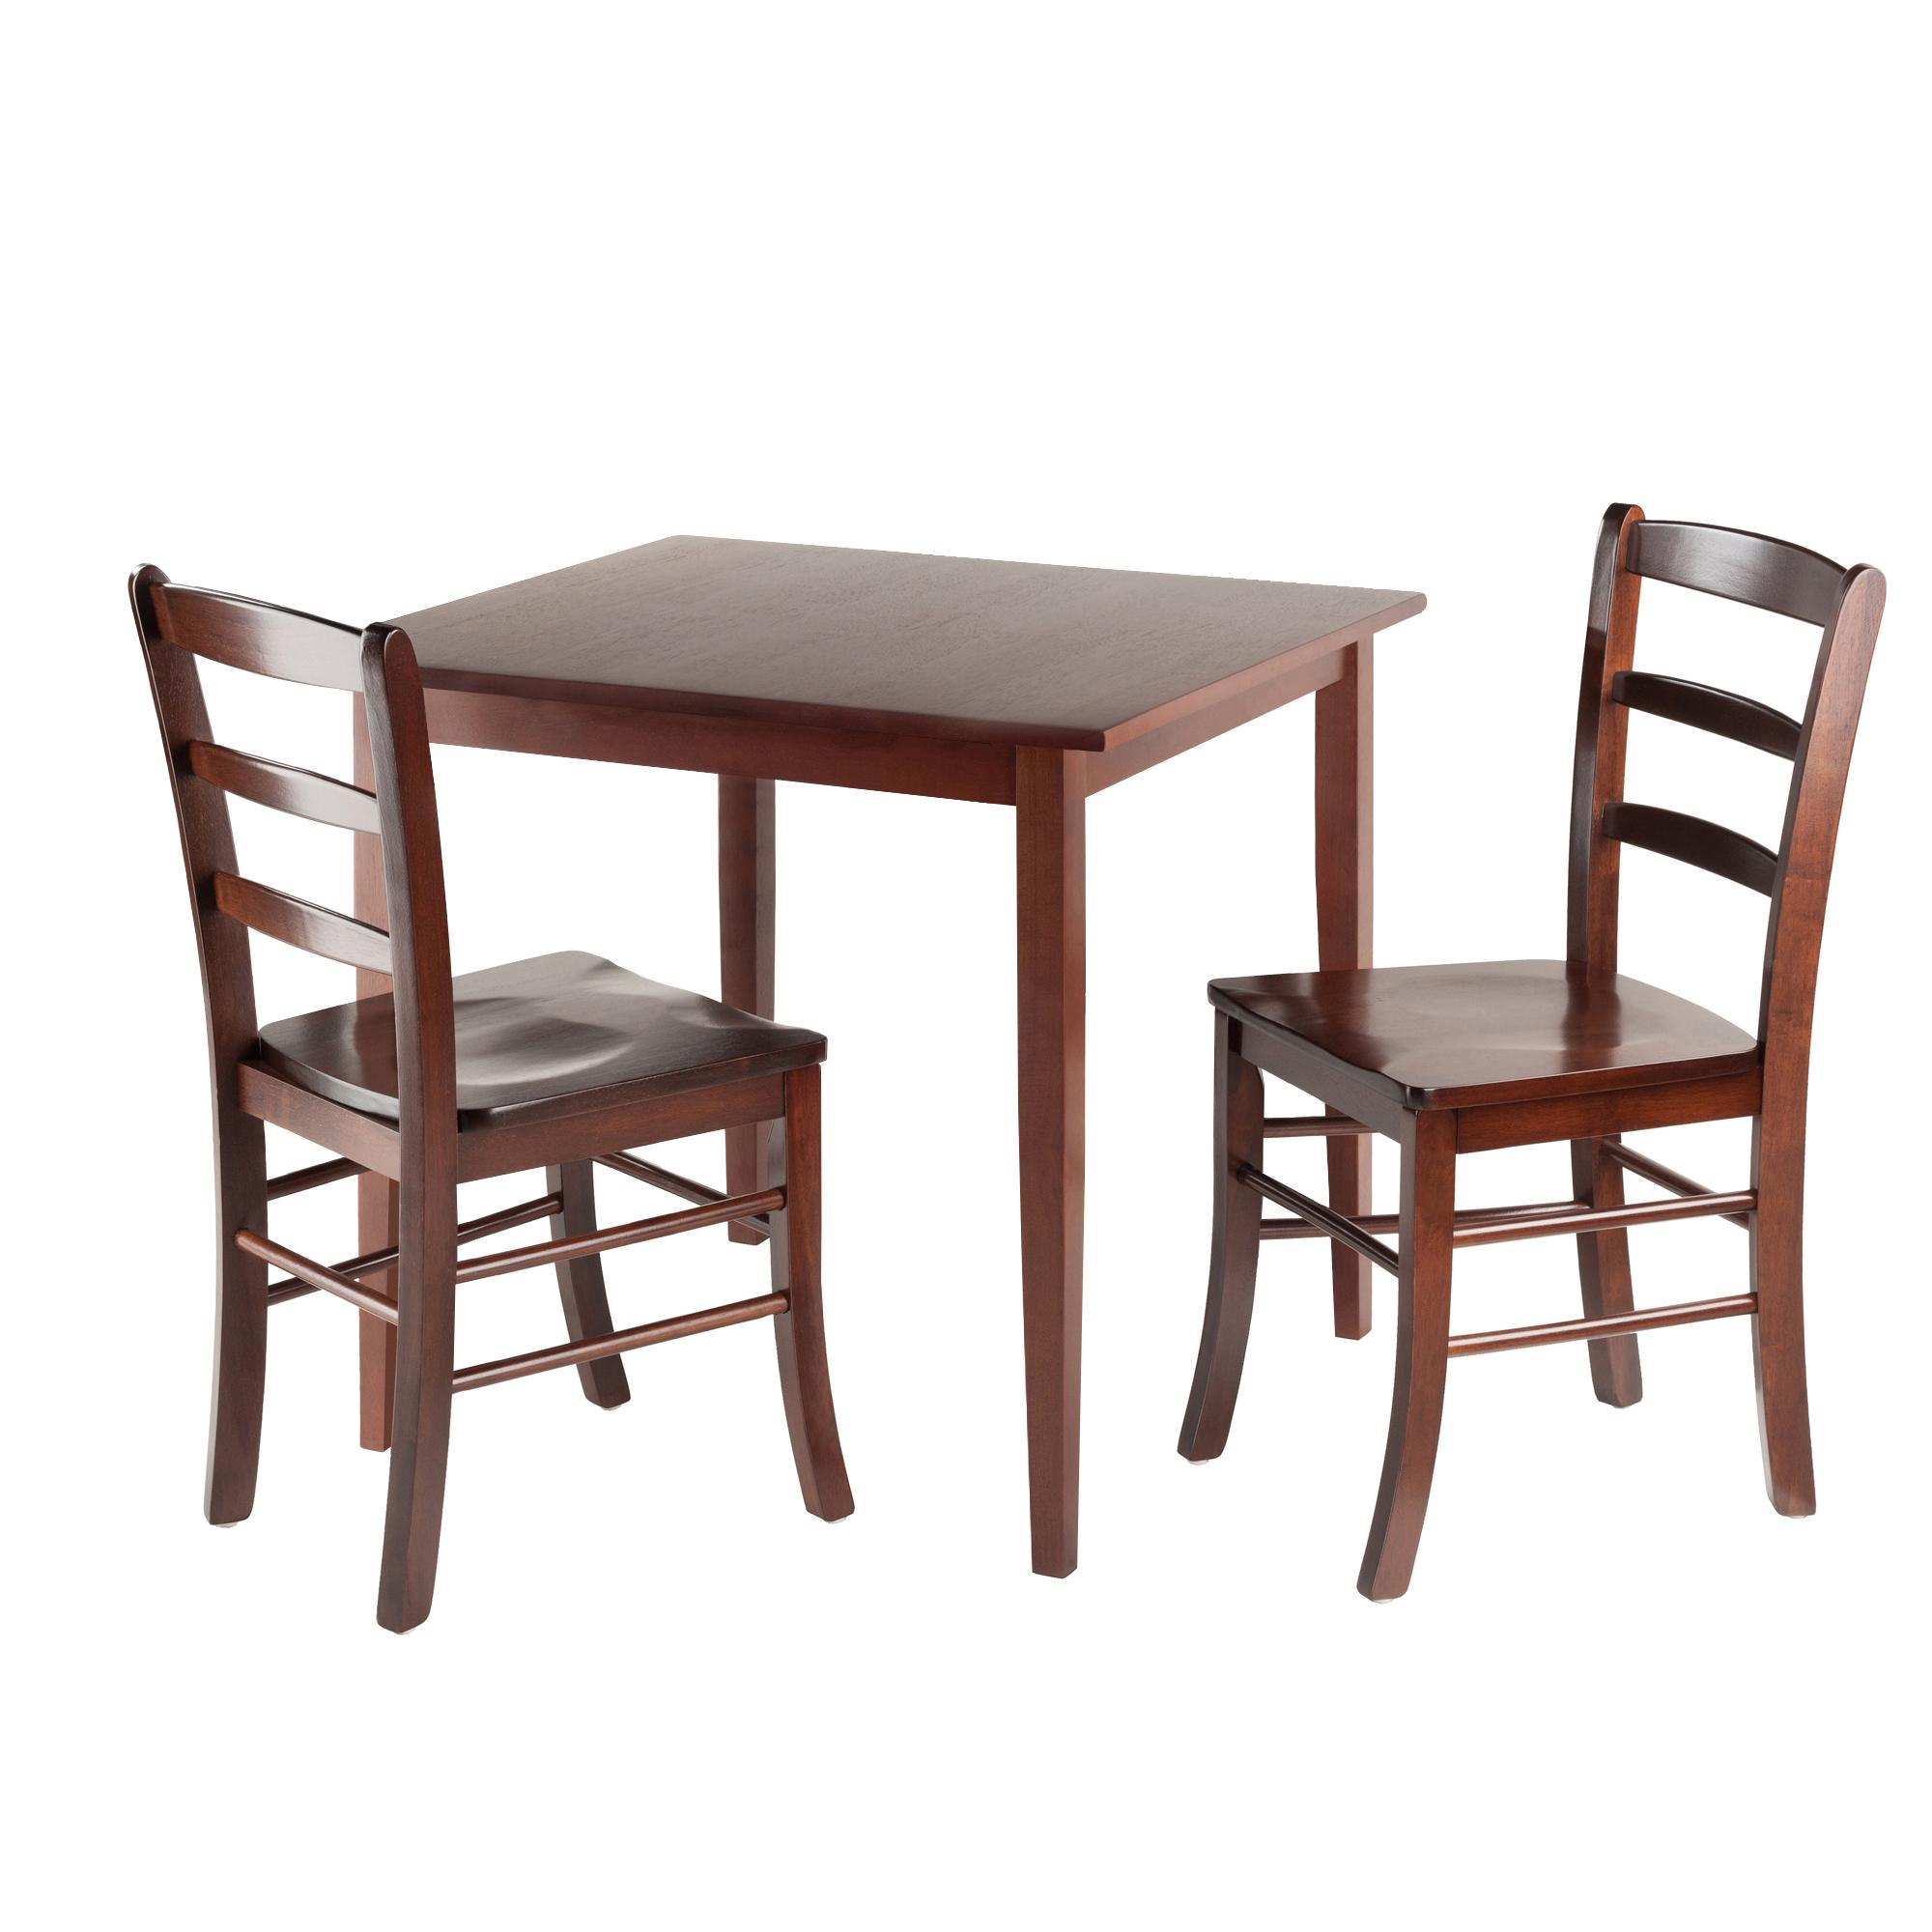 Square Kitchen Table And Chairs: Winsome Wood Groveland Square Dining Table With 2 Chairs